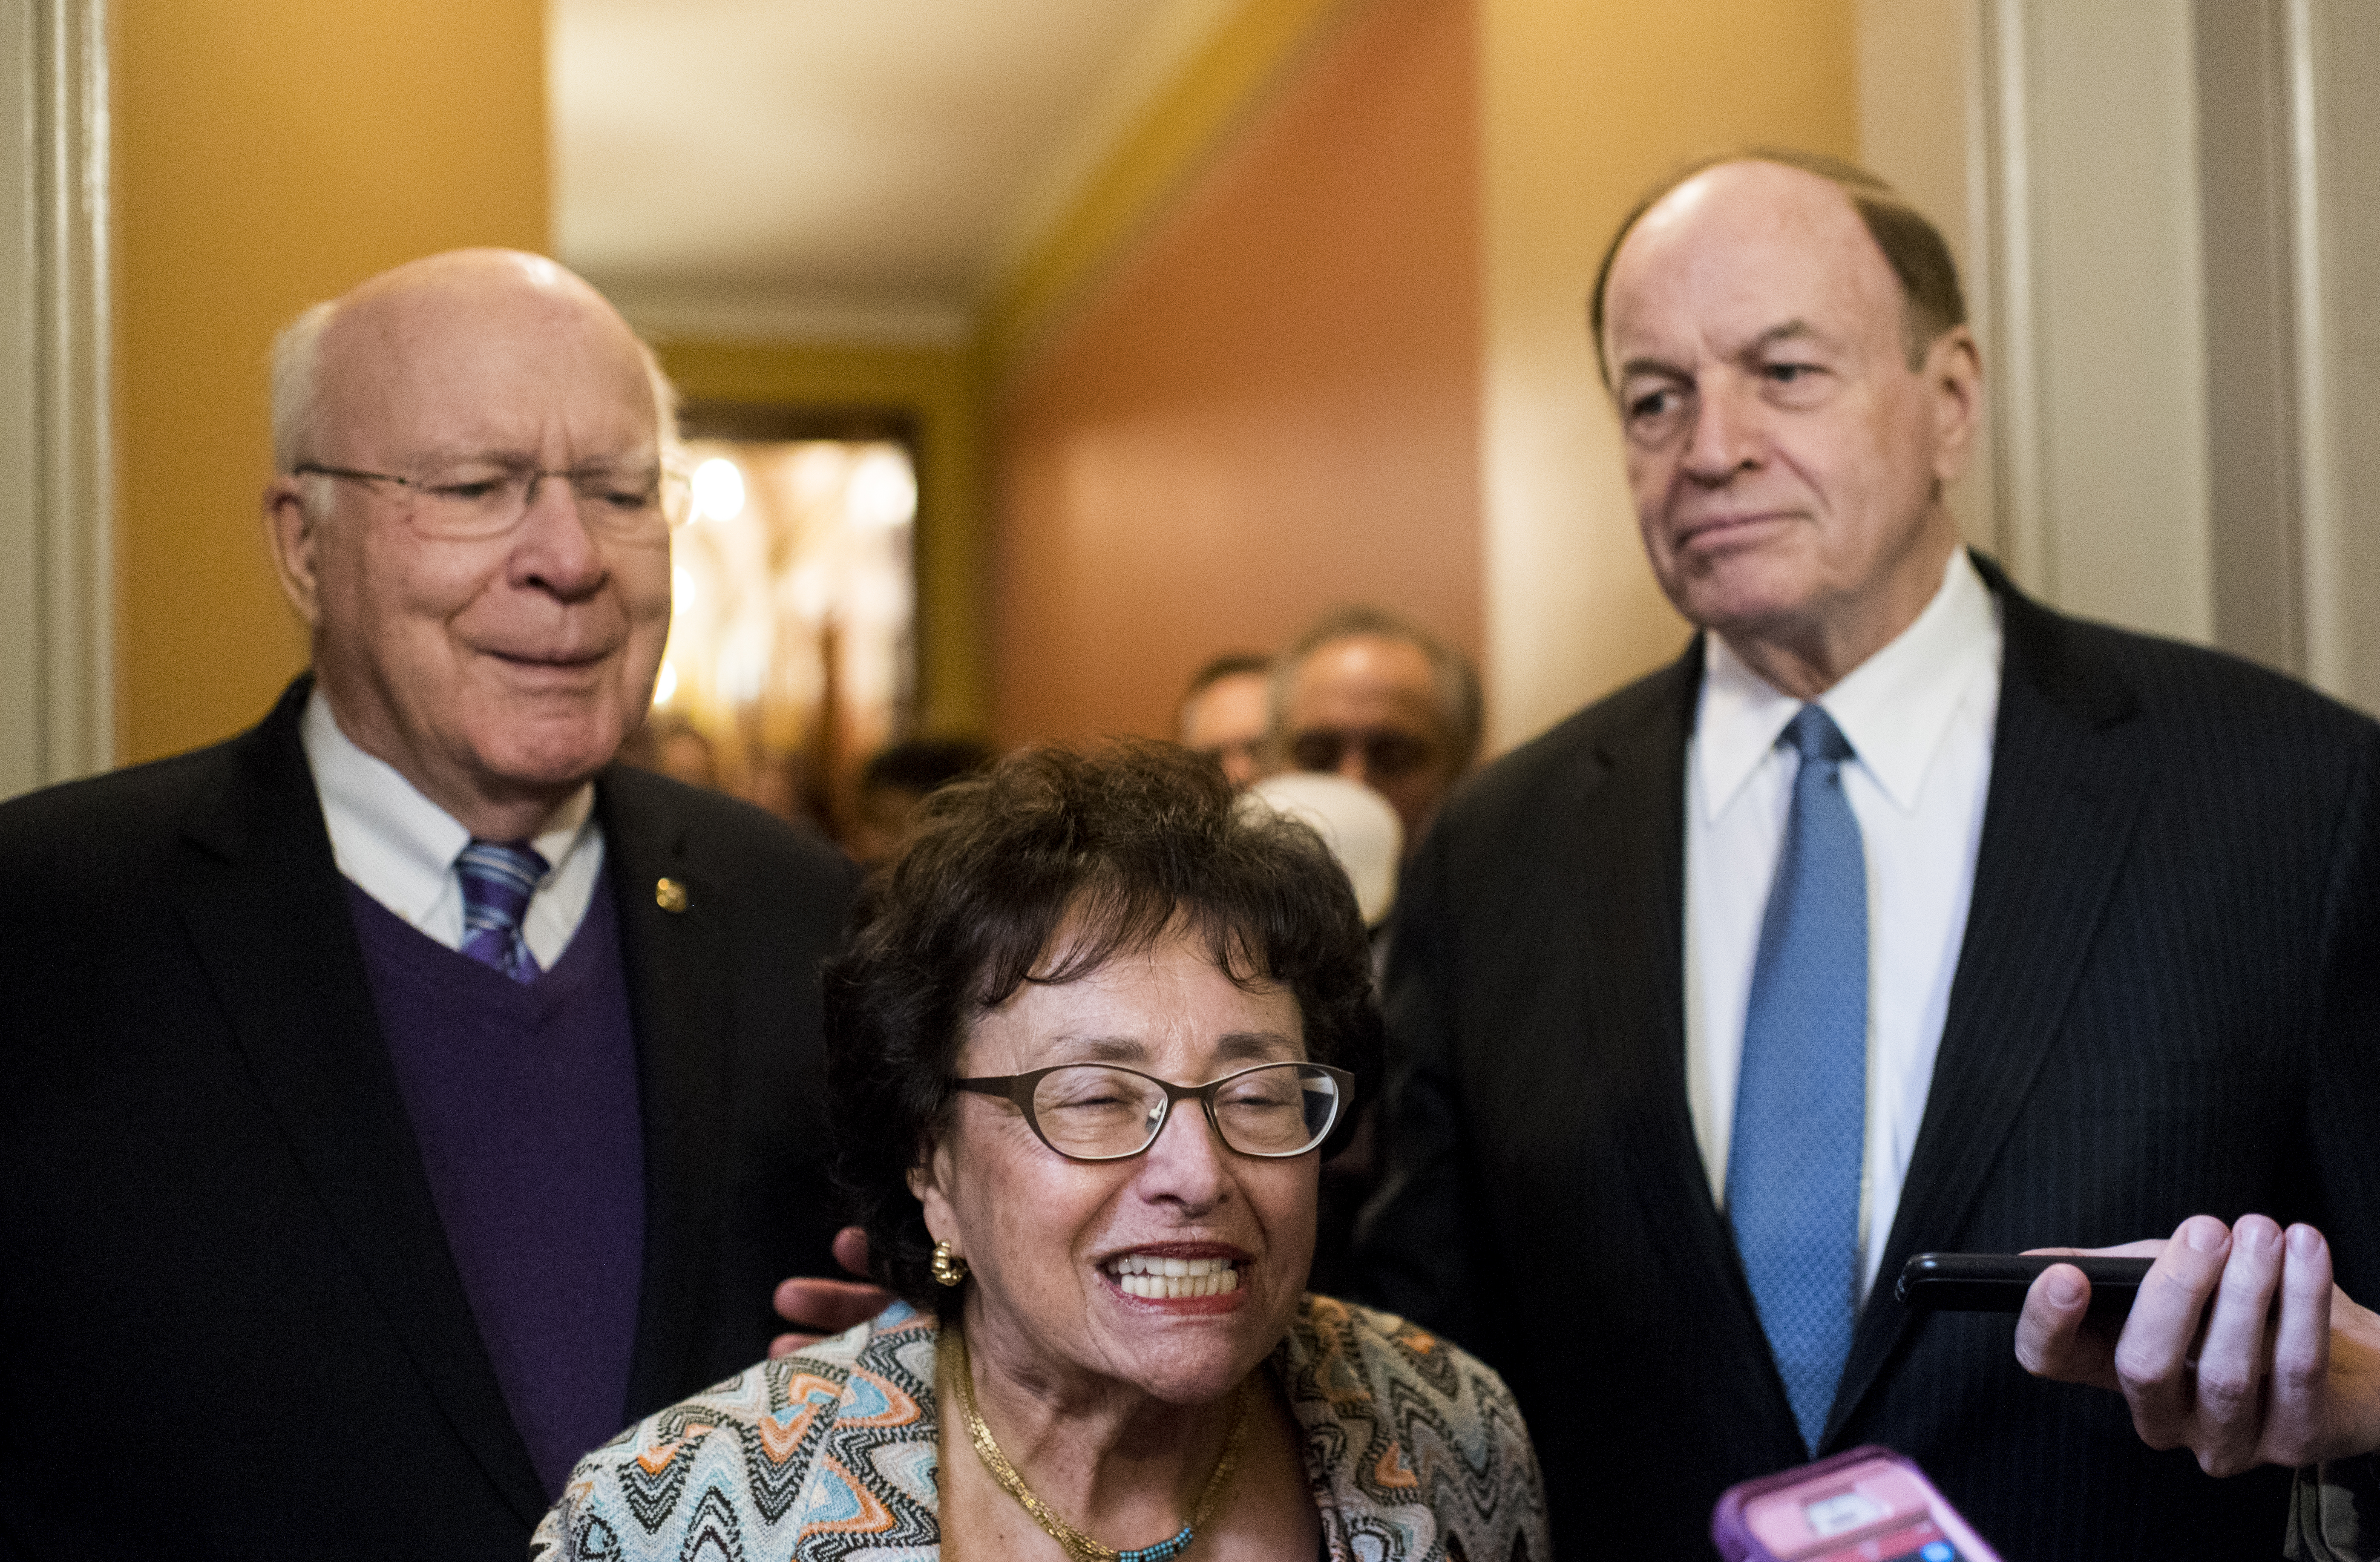 UNITED STATES - DECEMBER 12: From left, Sen. Patrick Leahy, D-Vt., Rep. Nita Lowey, D-N.Y., Sen. Richard Shelby, R-Ala., and Rep. Kay Granger, R-Texas, (not pictured) emerge from a meeting in the Capitol nto announce a spending deal on Thursday, Dec. 12, 2019. (Photo By Bill Clark/CQ Roll Call)